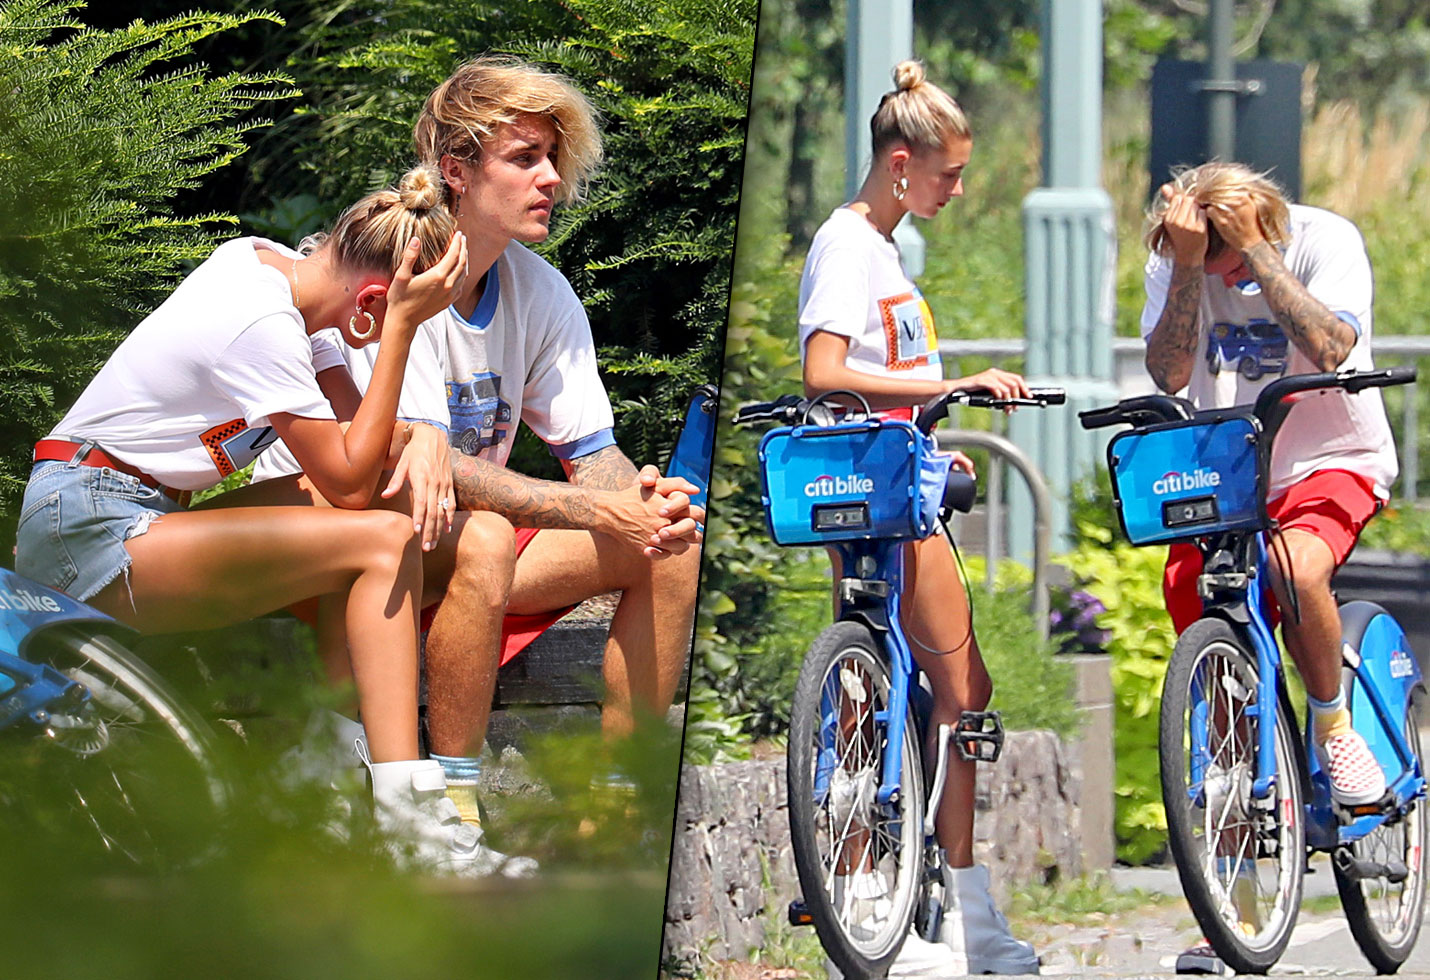 Justin Bieber Hailey Baldwin Crying Bikes